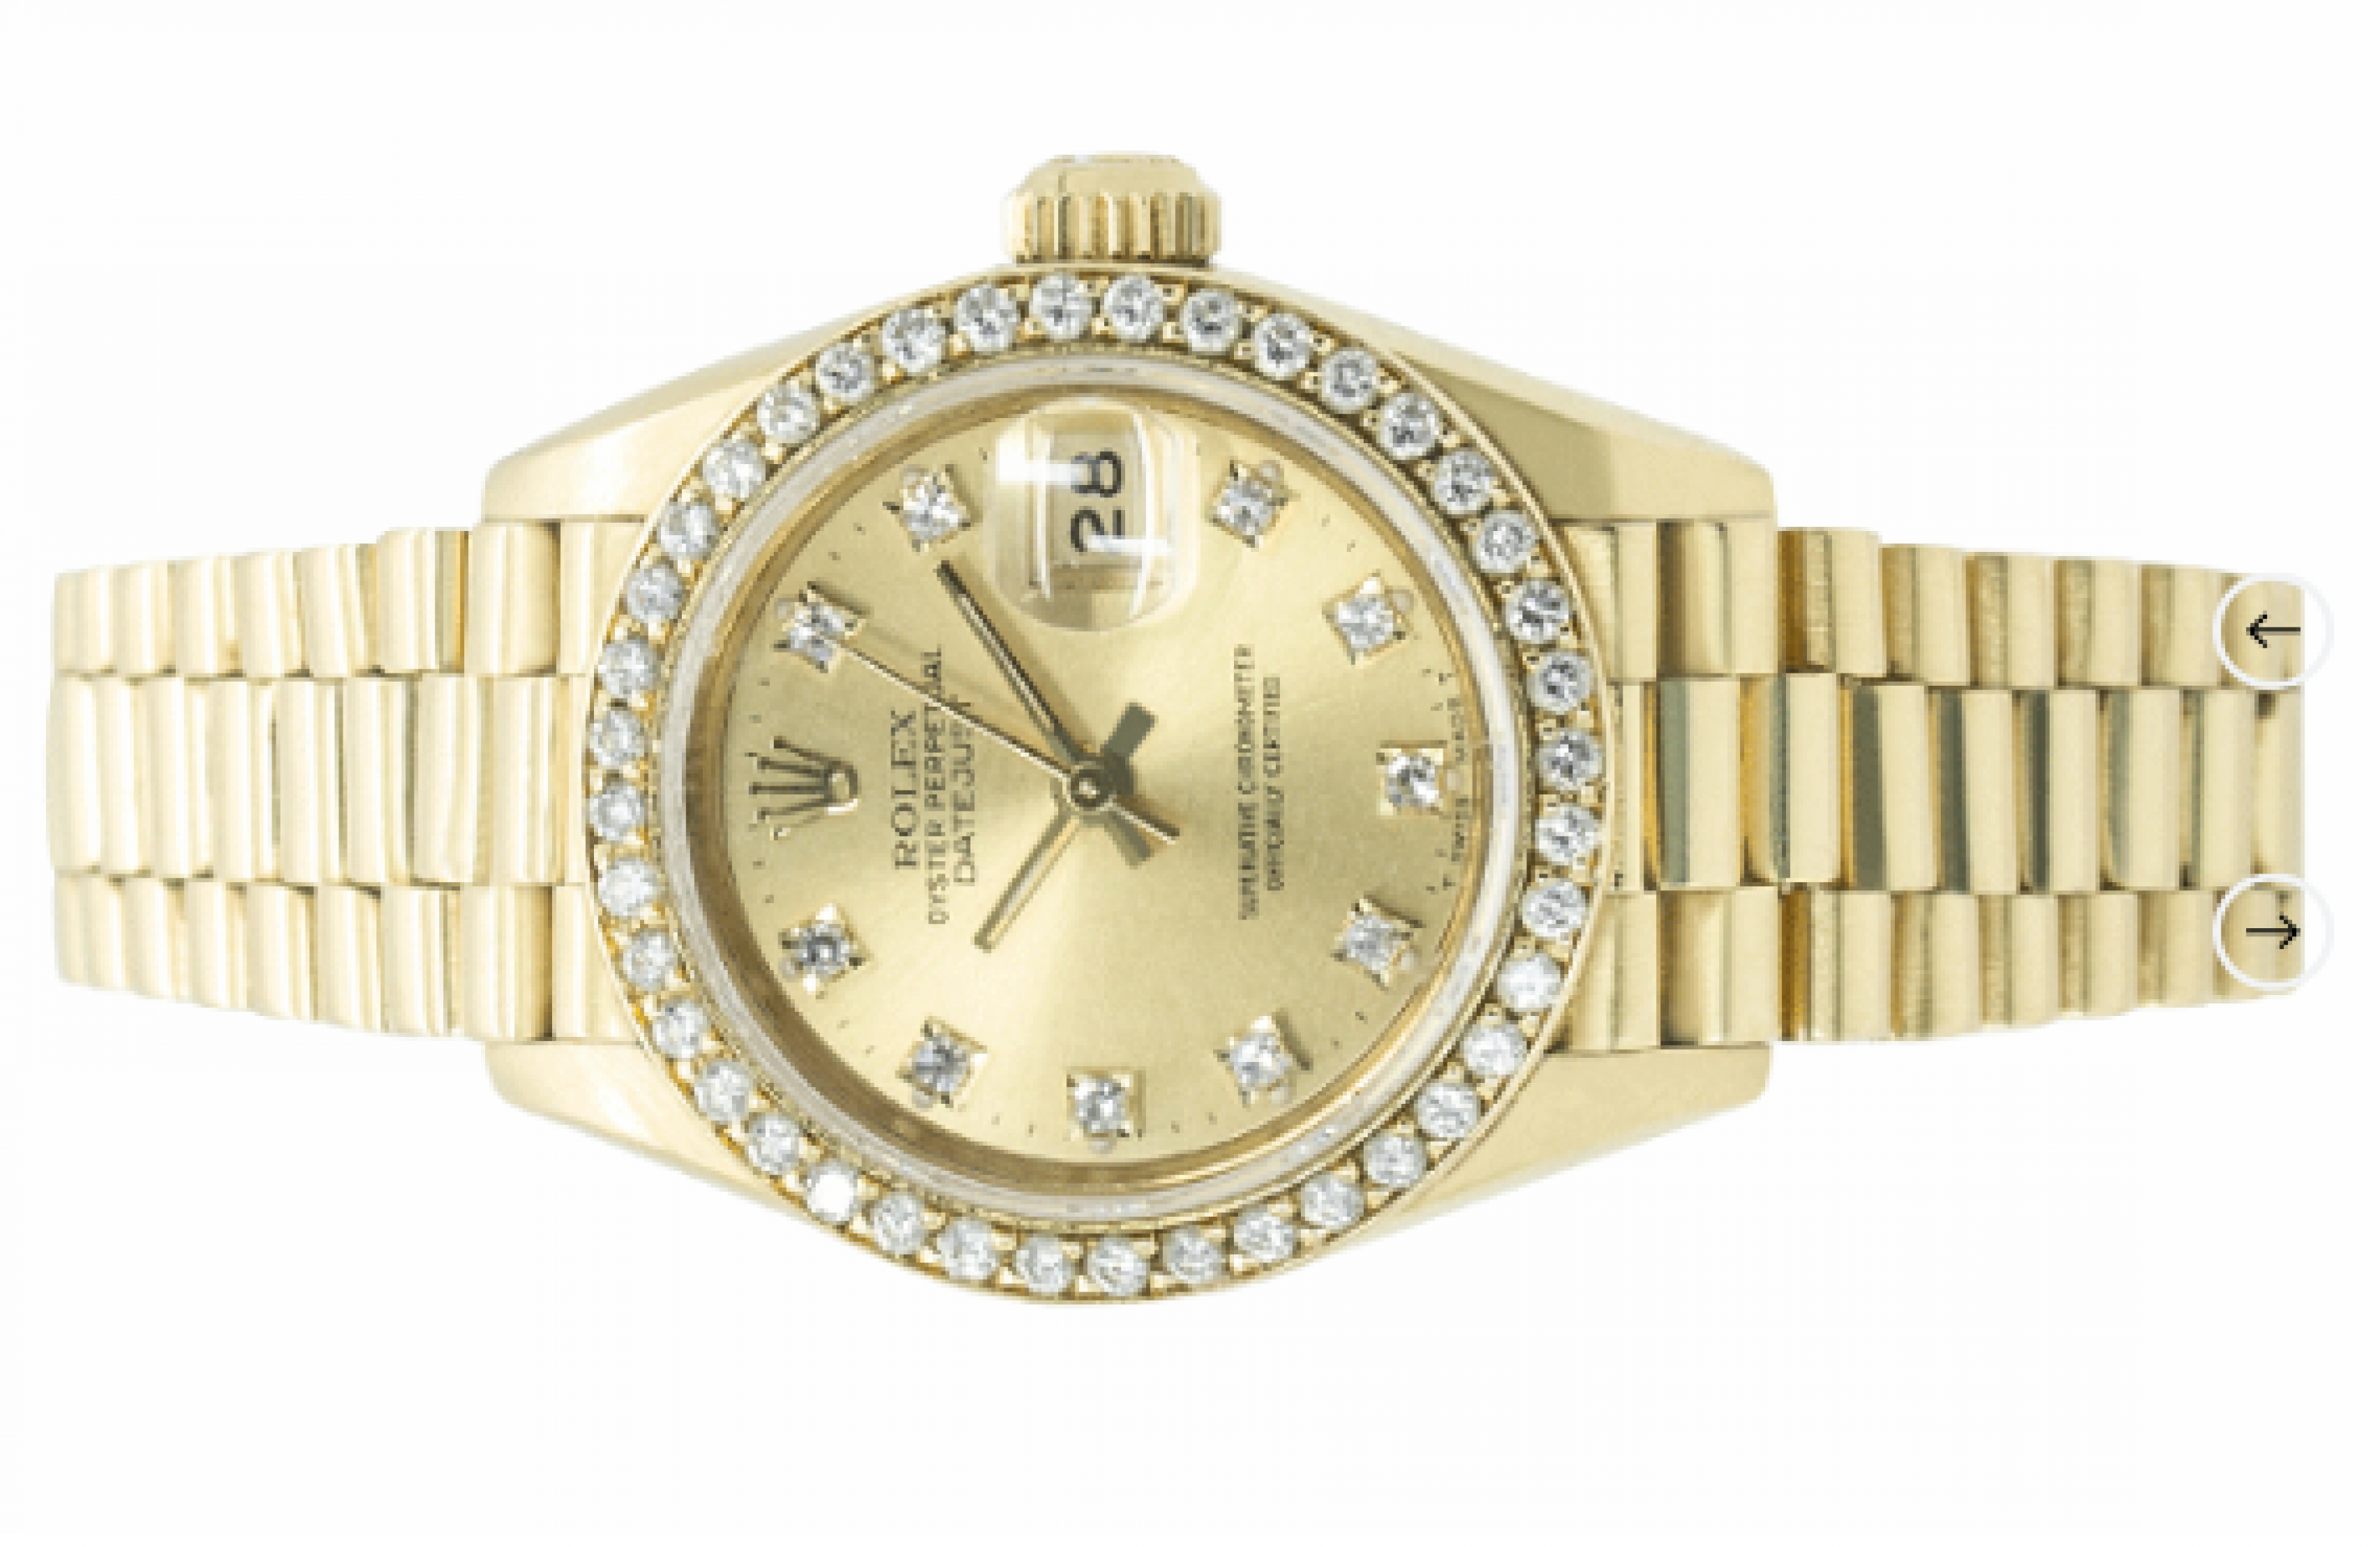 Rolex Oyster Perpetual Lady Datejust Yellow Gold 26mm